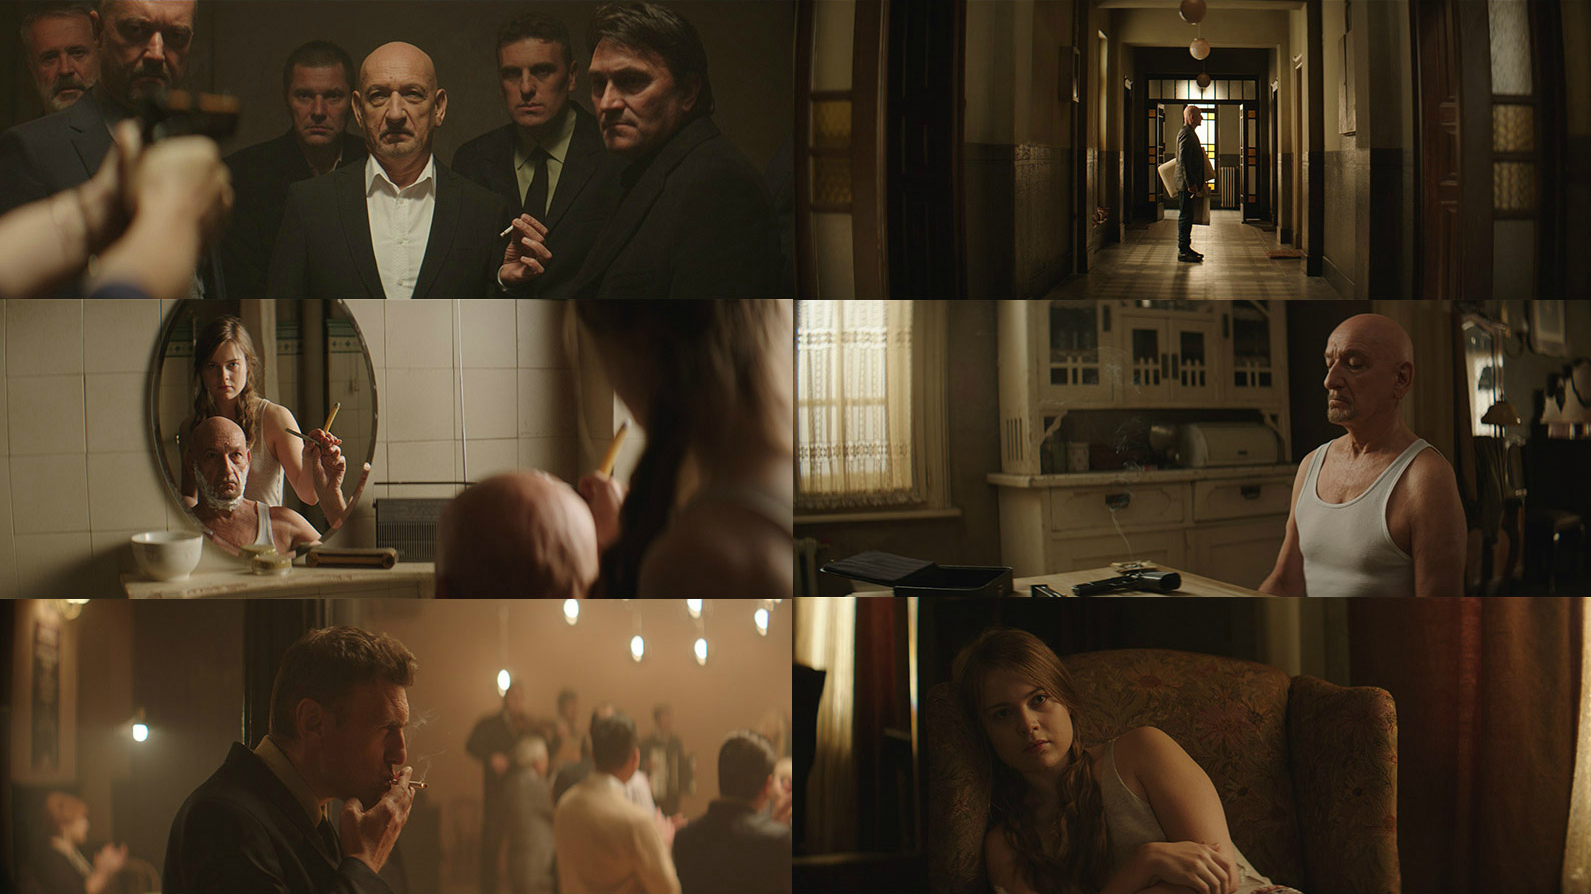 Production stills from An Ordinary Man directed by Brad Silberling - courtesy of Saben Films / Netflix